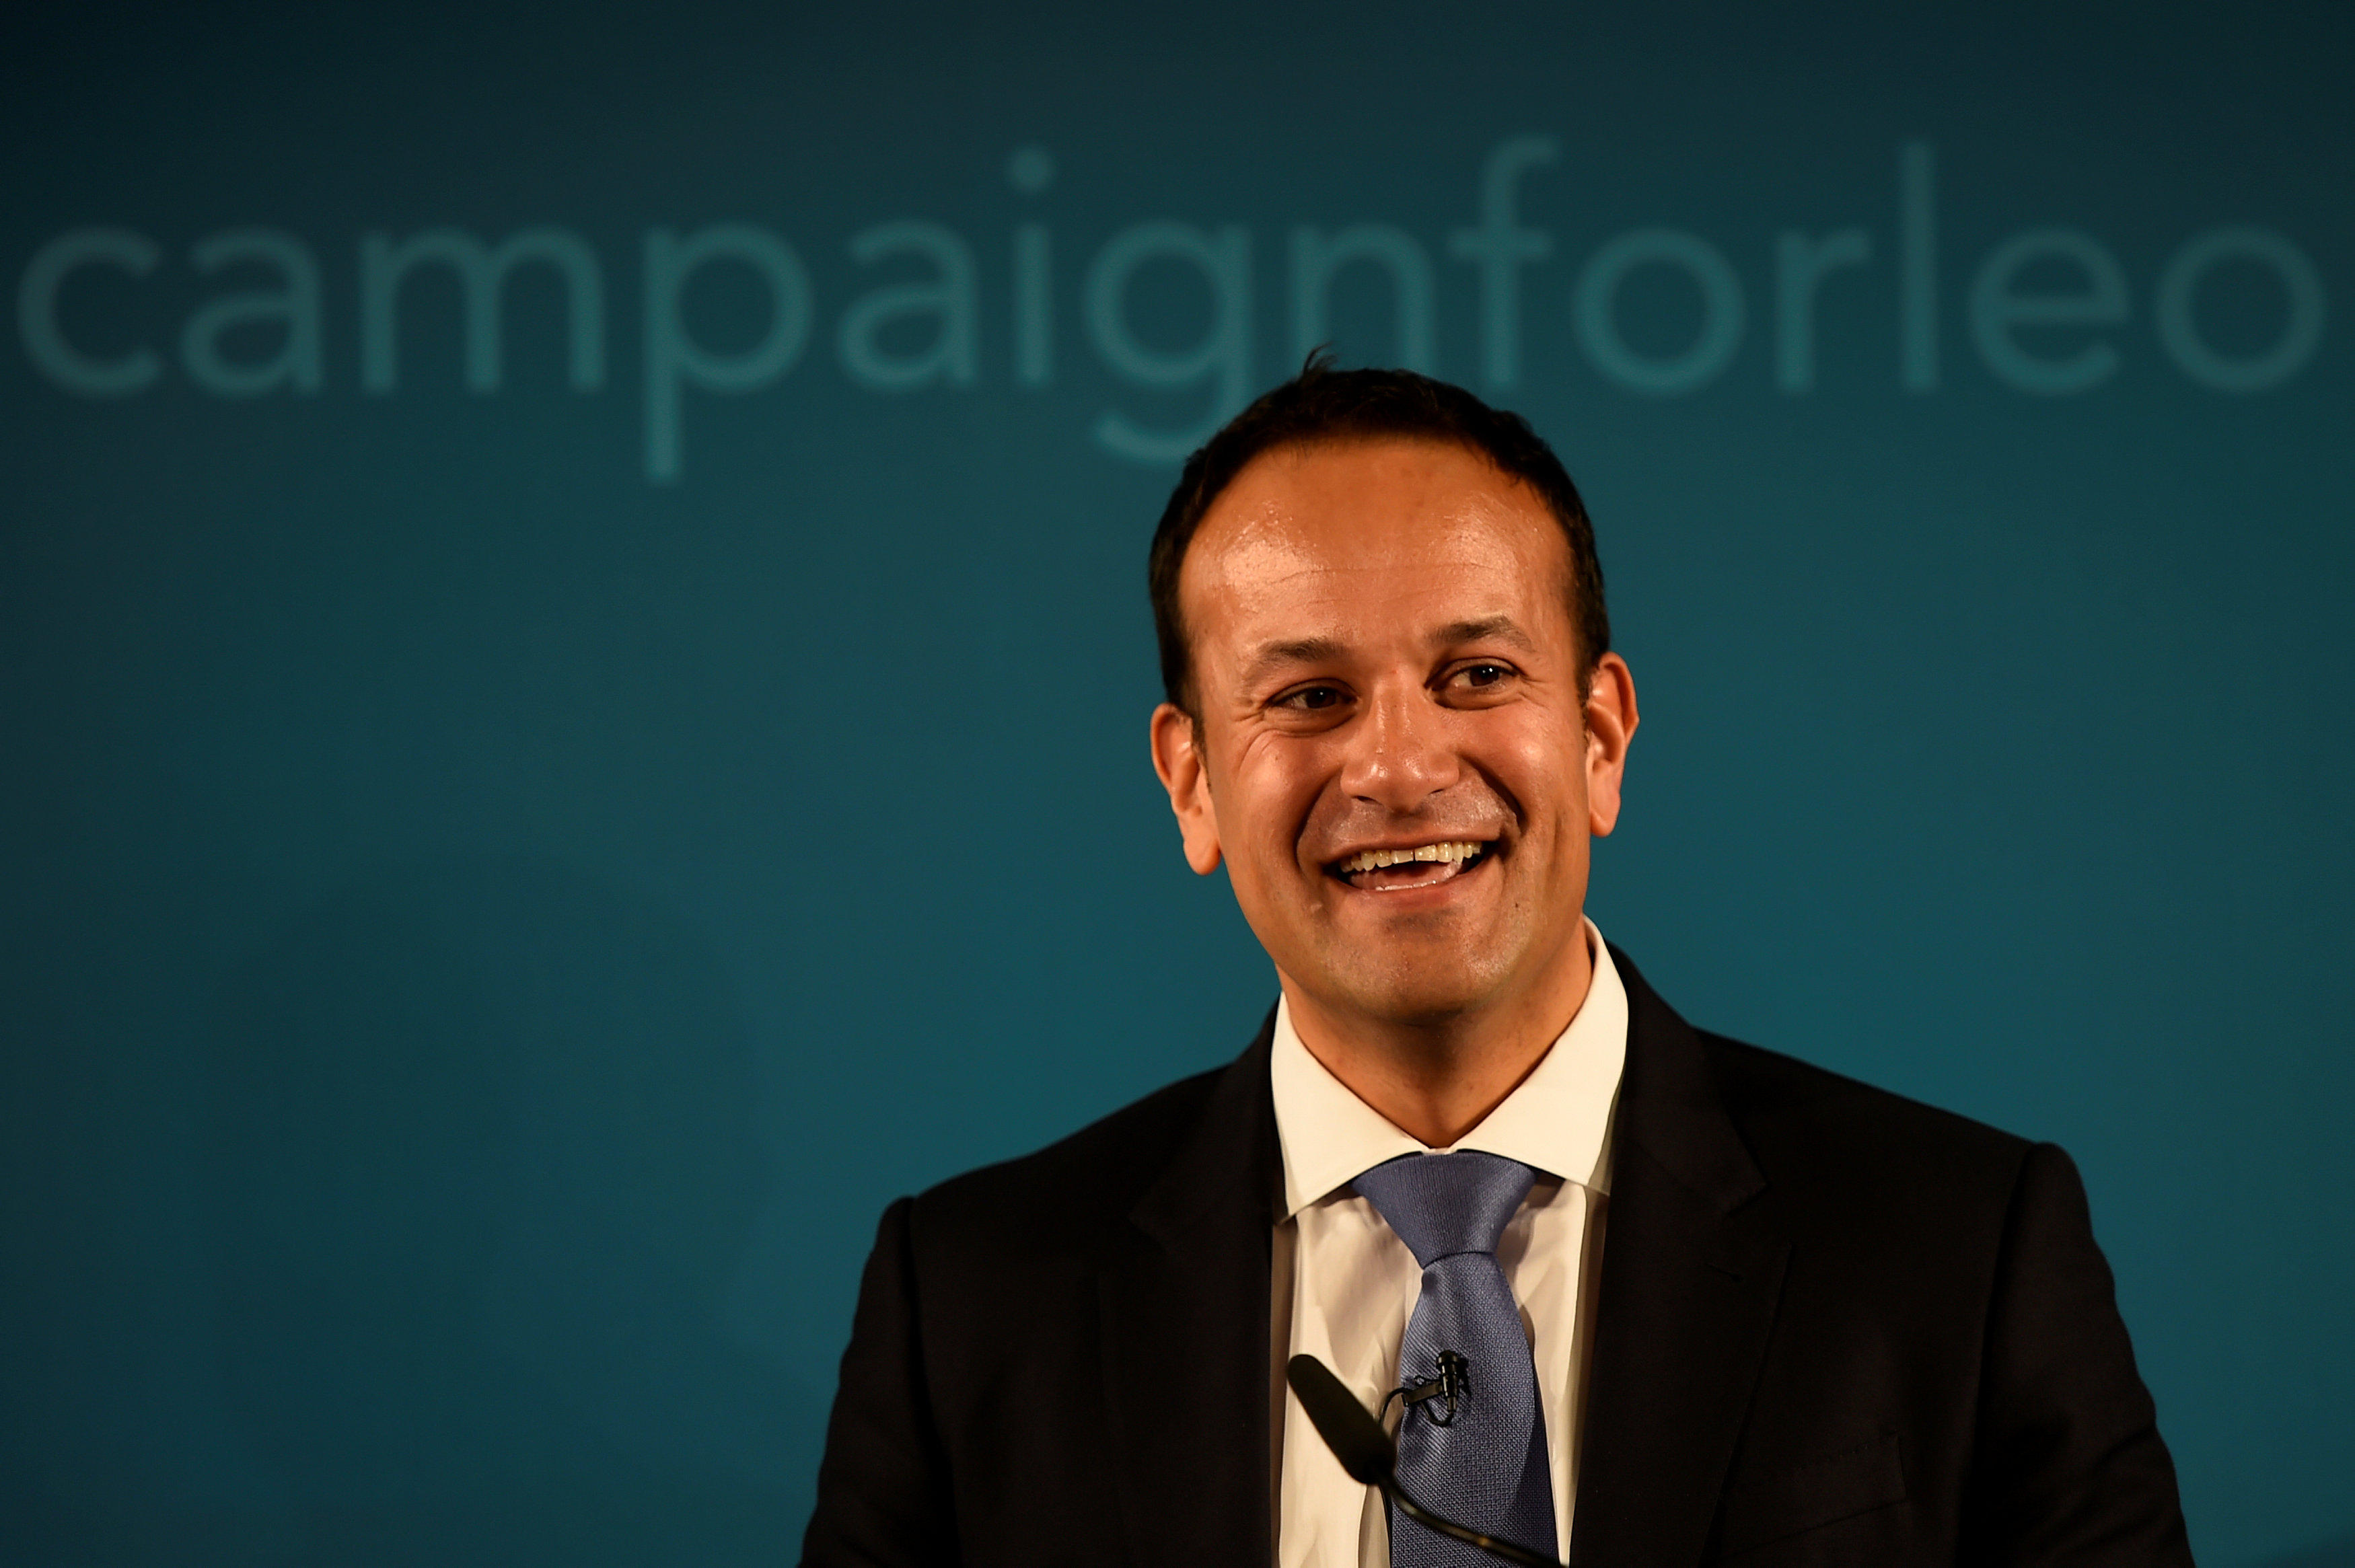 Ireland's ruling party named 38-year-old Leo Varadkar, an openly gay son of  an Indian immigrant, as its new leader, leaving him poised to succeed  current ...